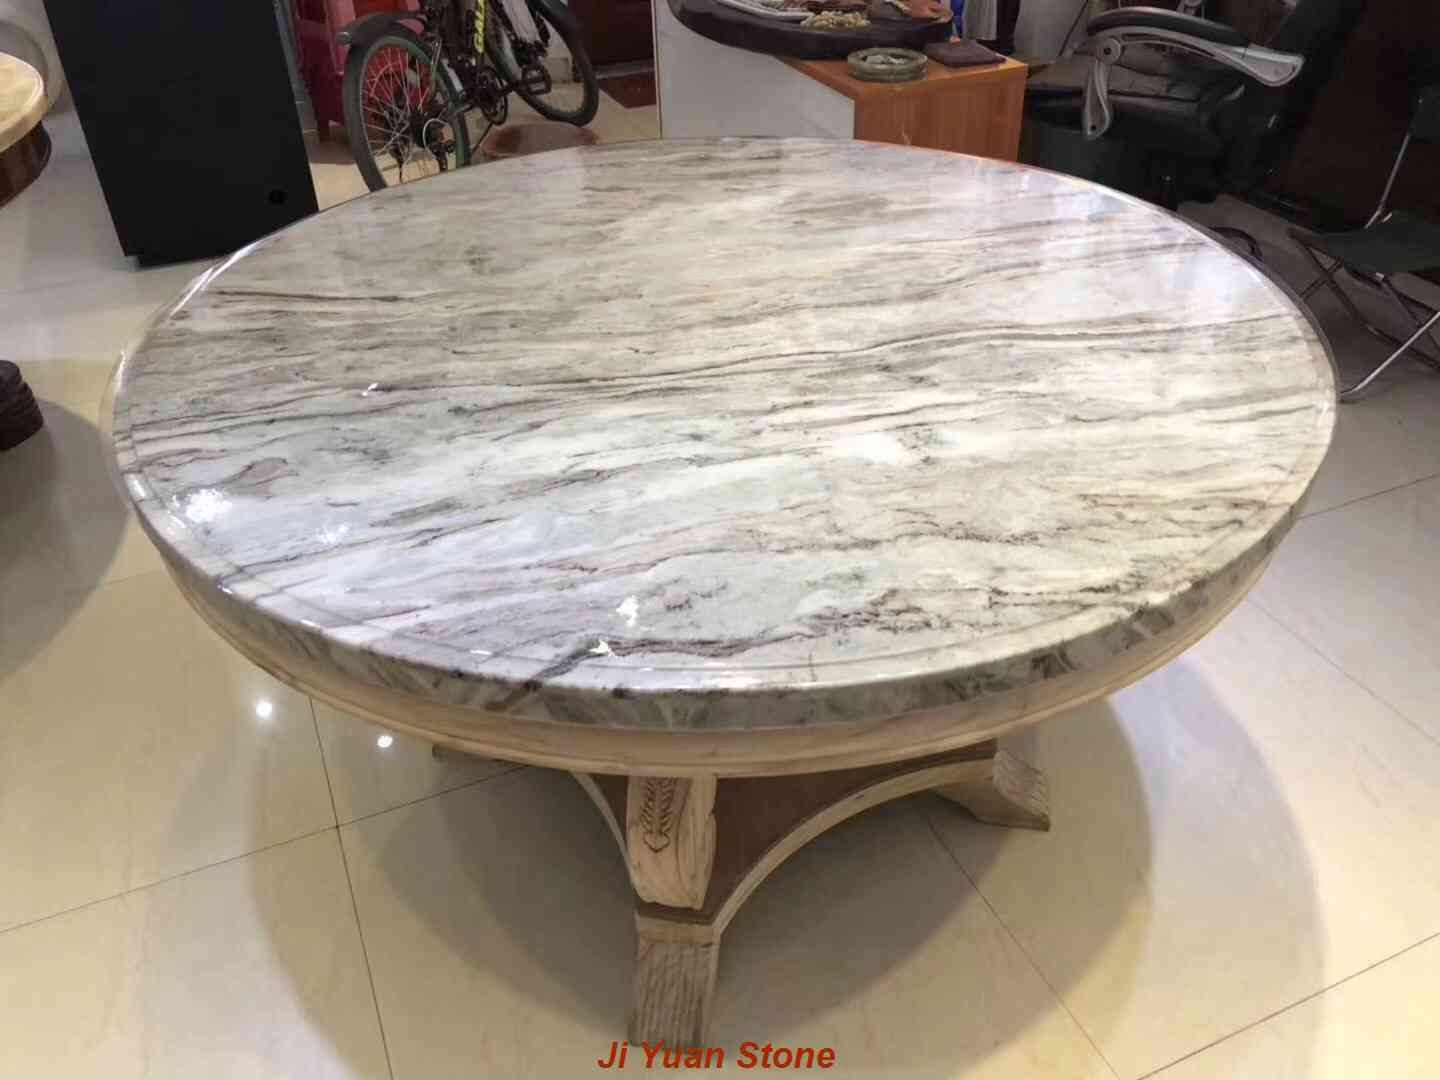 marble dining table prices,marble table tops made to order,grey marble dining table and chairs,black marble top dining table,marble dining table and chairs sale